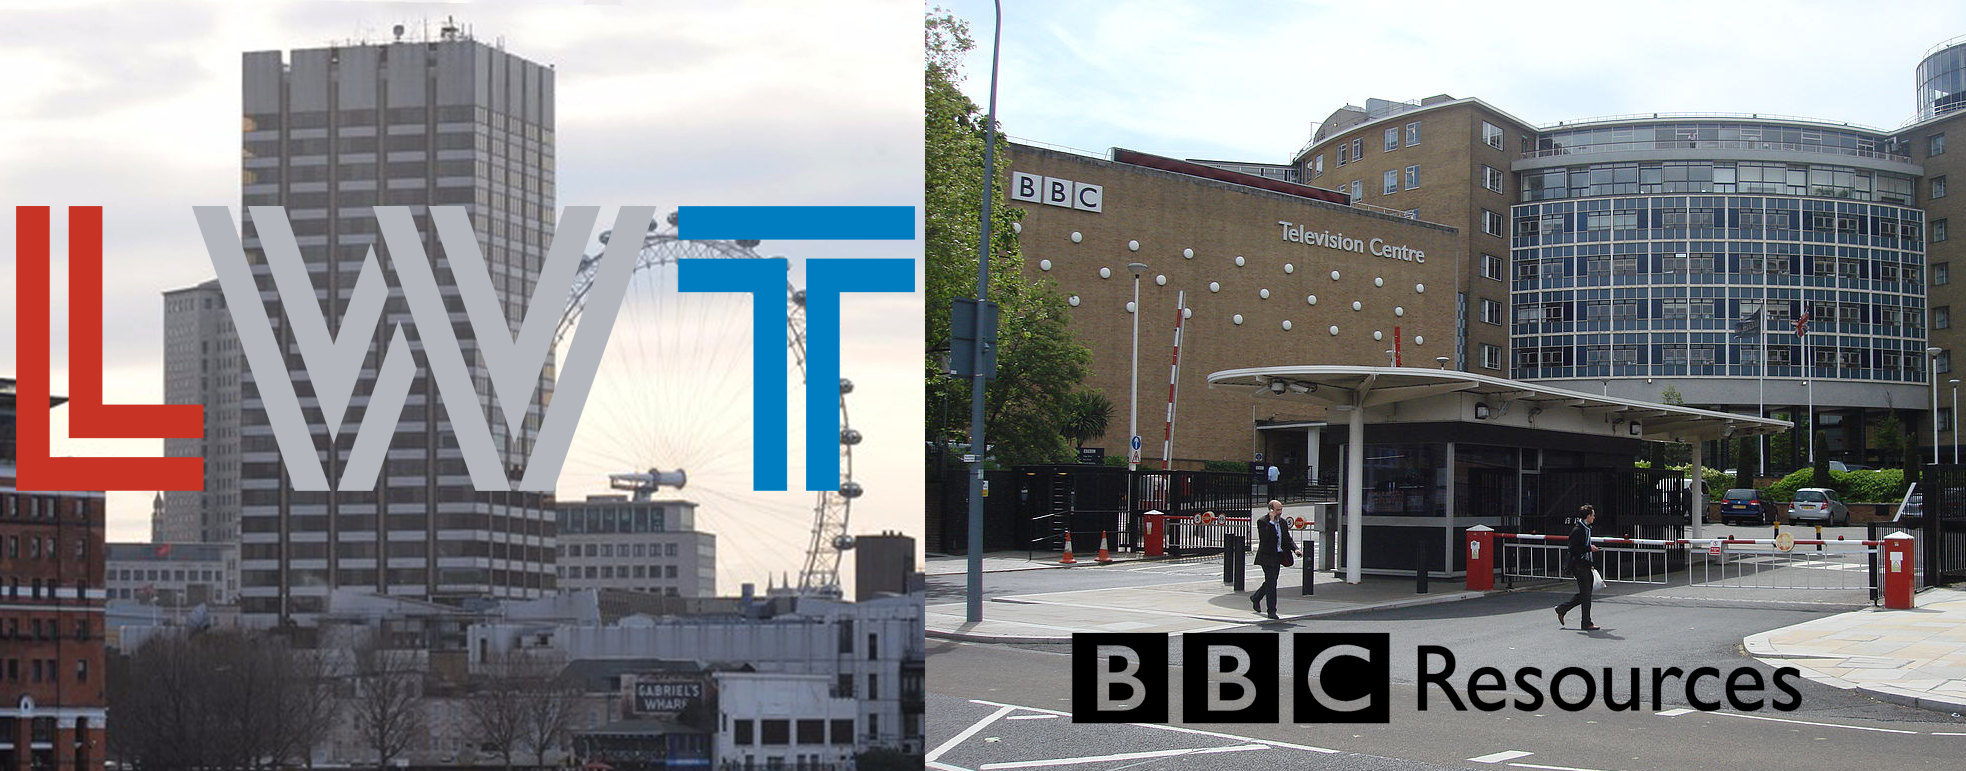 lwt bbc.png